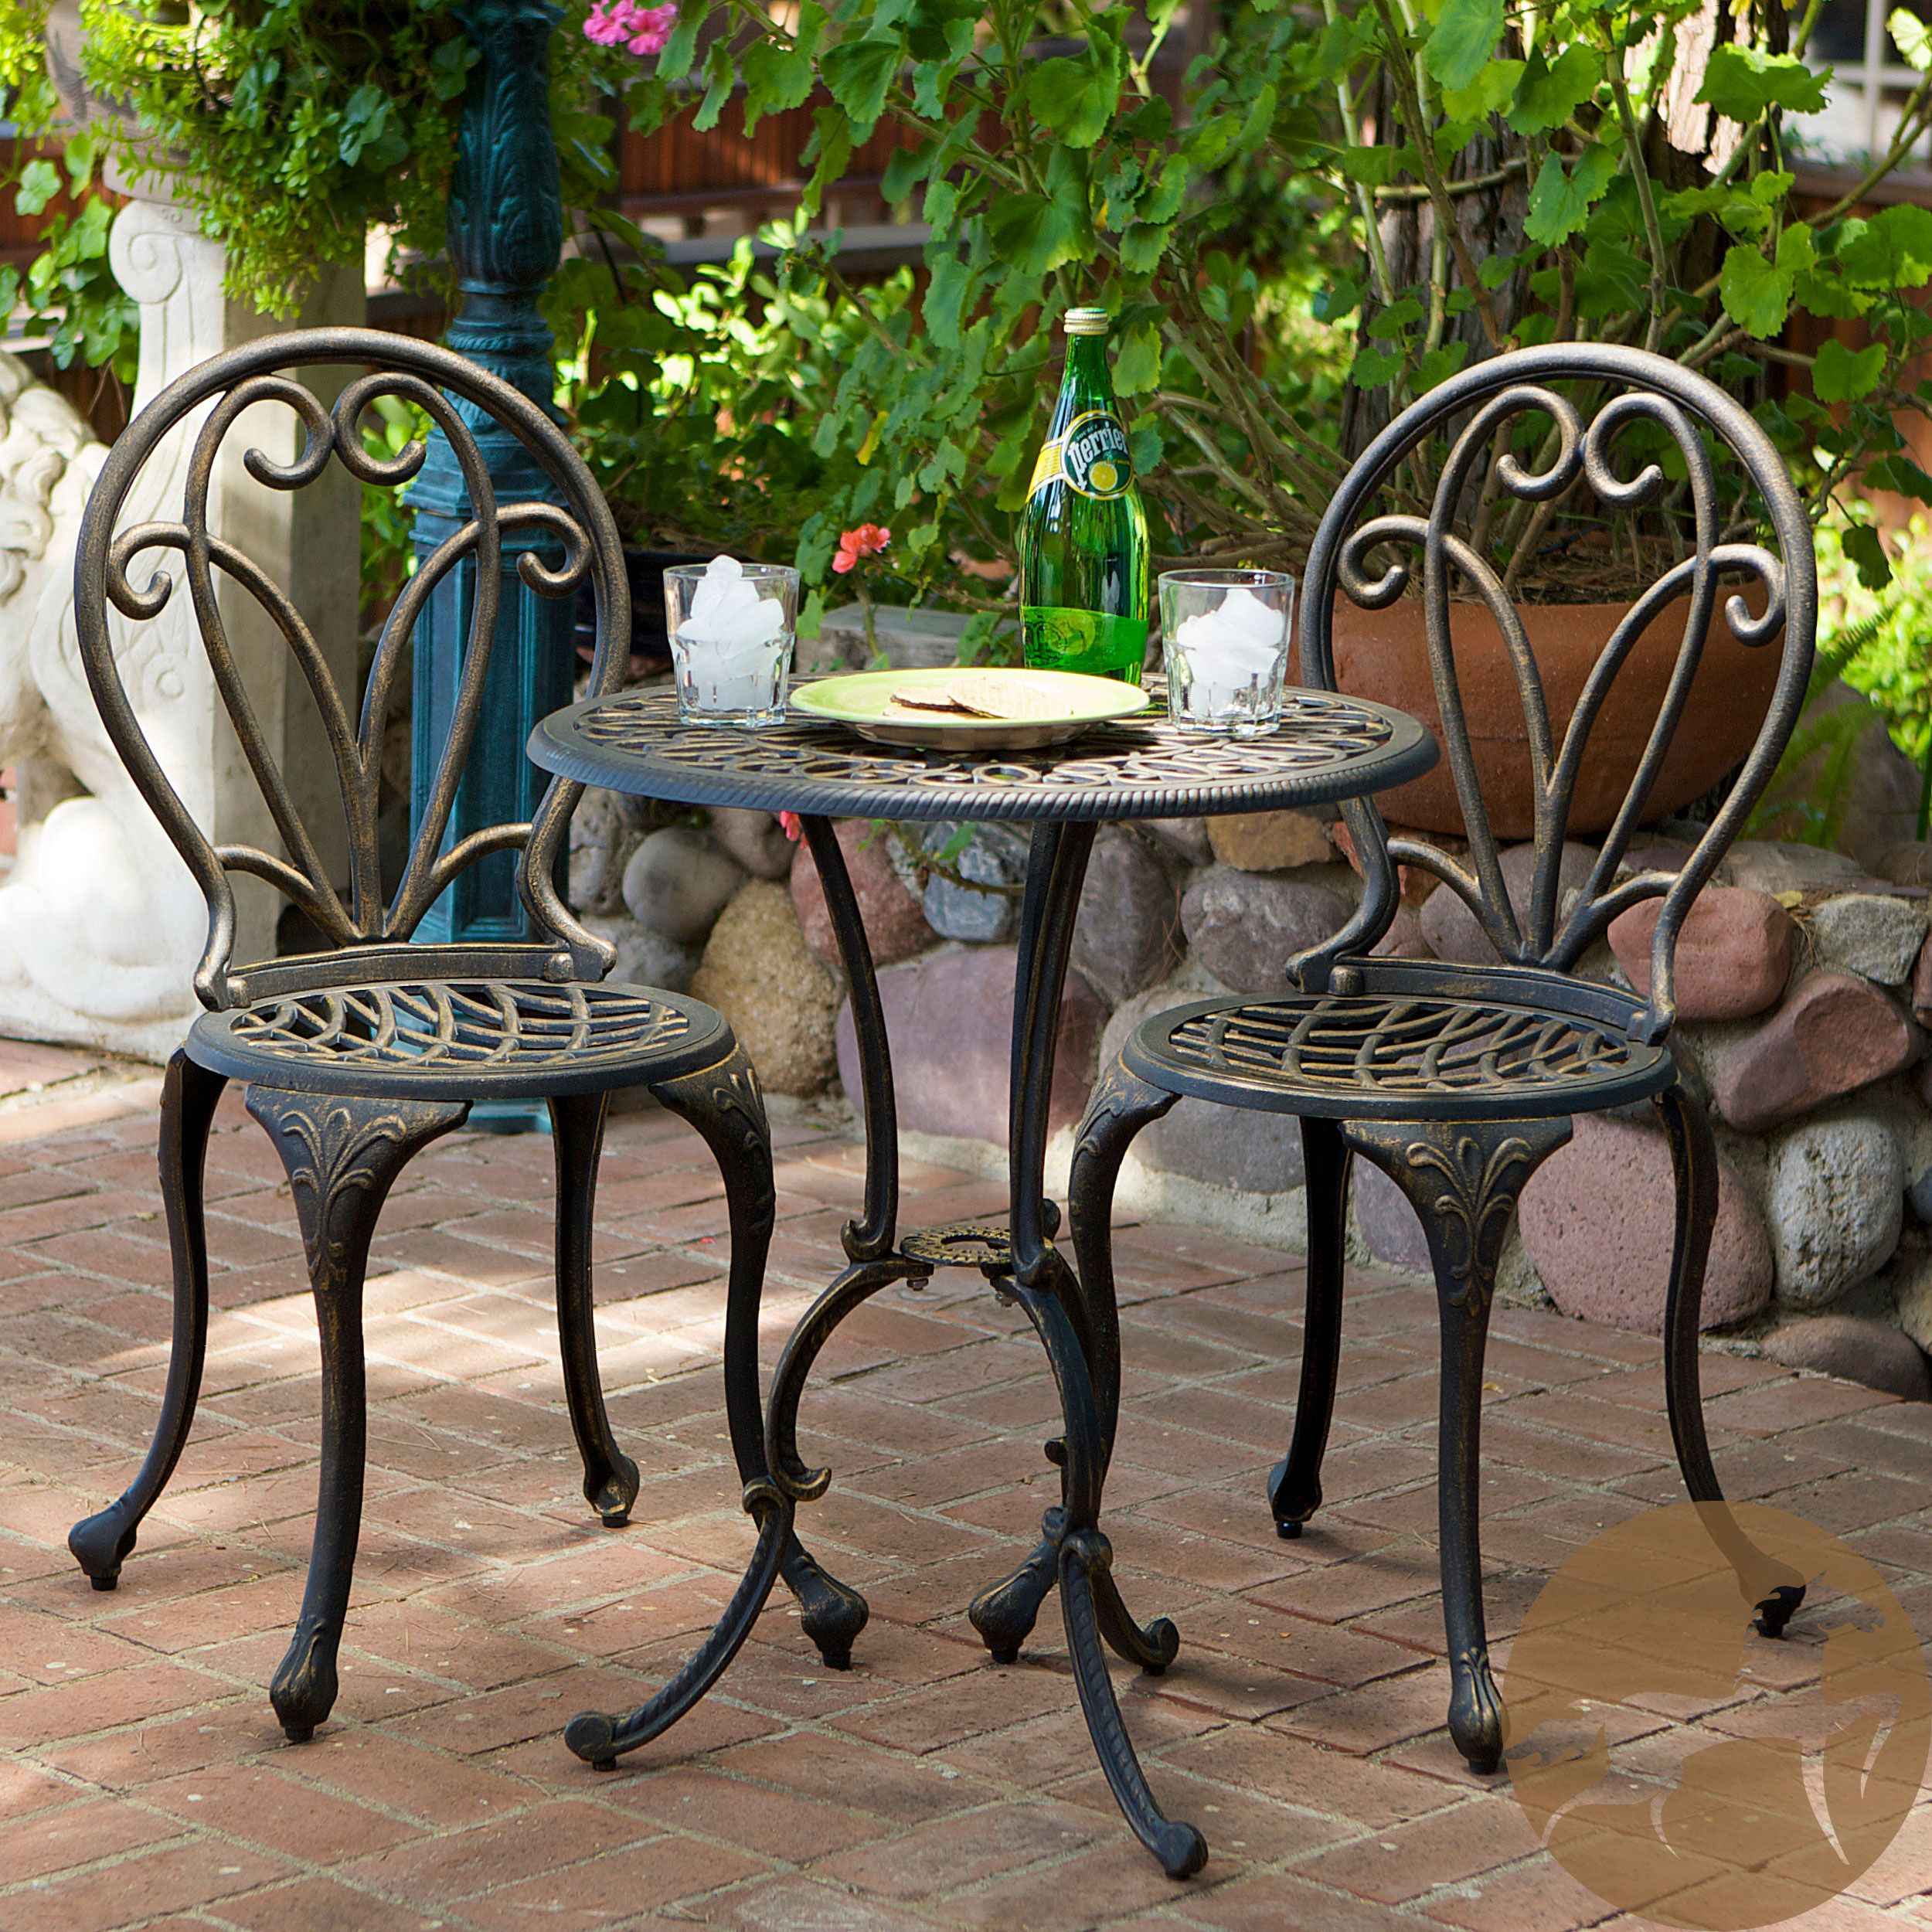 2 chairs and table patio set tempur pedic office chair tp8000 reviews this french style outdoor bistro will lend classy